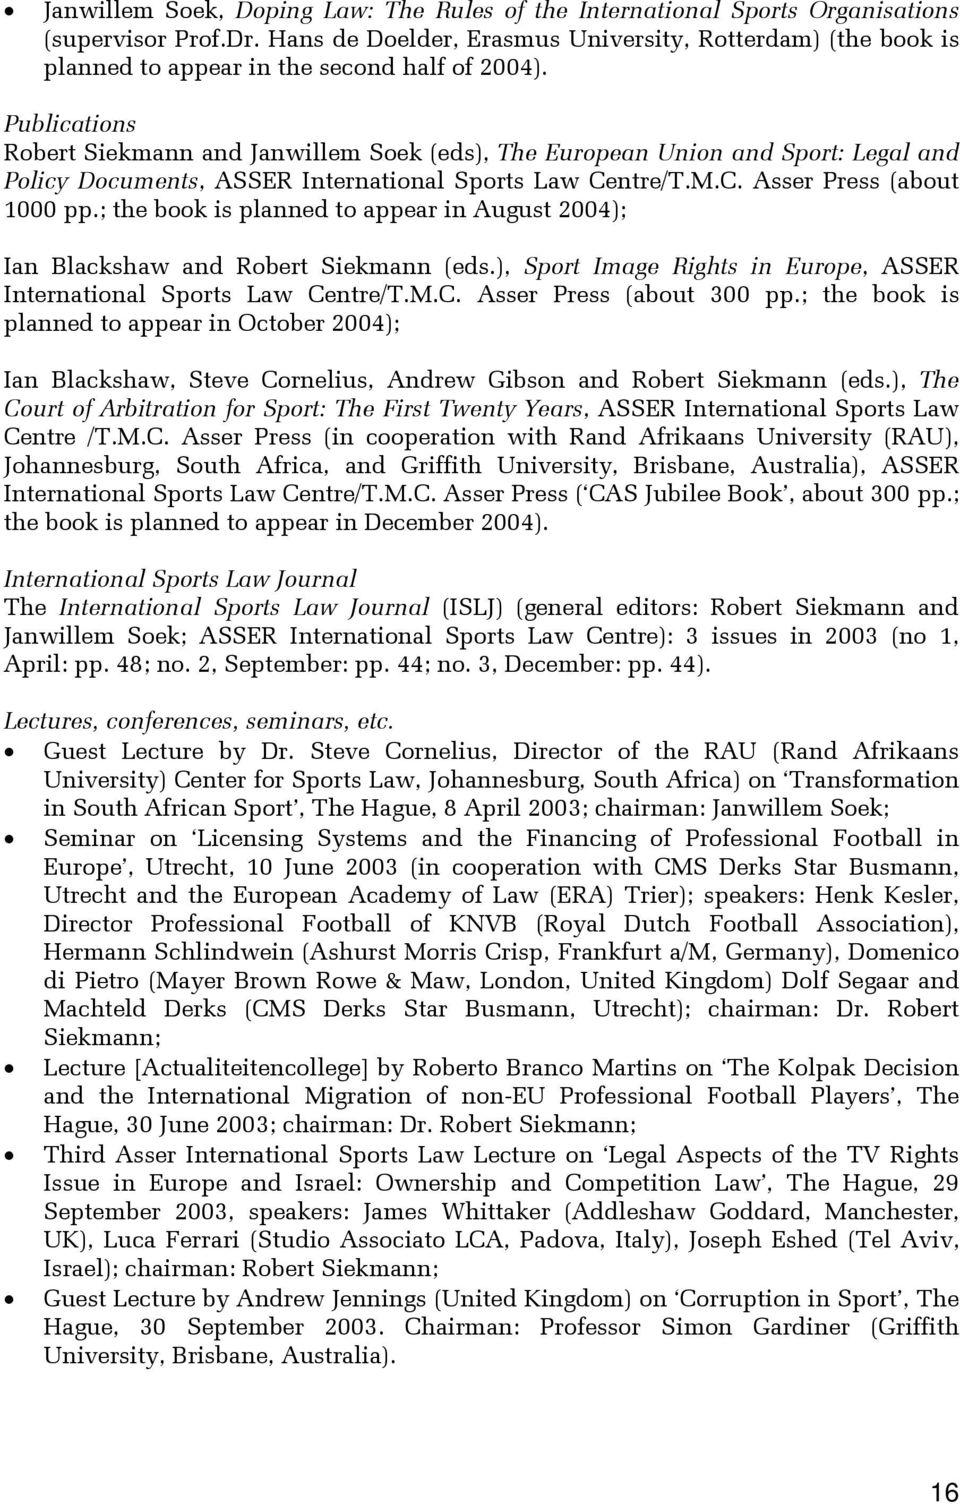 Publications Robert Siekmann and Janwillem Soek (eds), The European Union and Sport: Legal and Policy Documents, ASSER International Sports Law Centre/T.M.C. Asser Press (about 1000 pp.